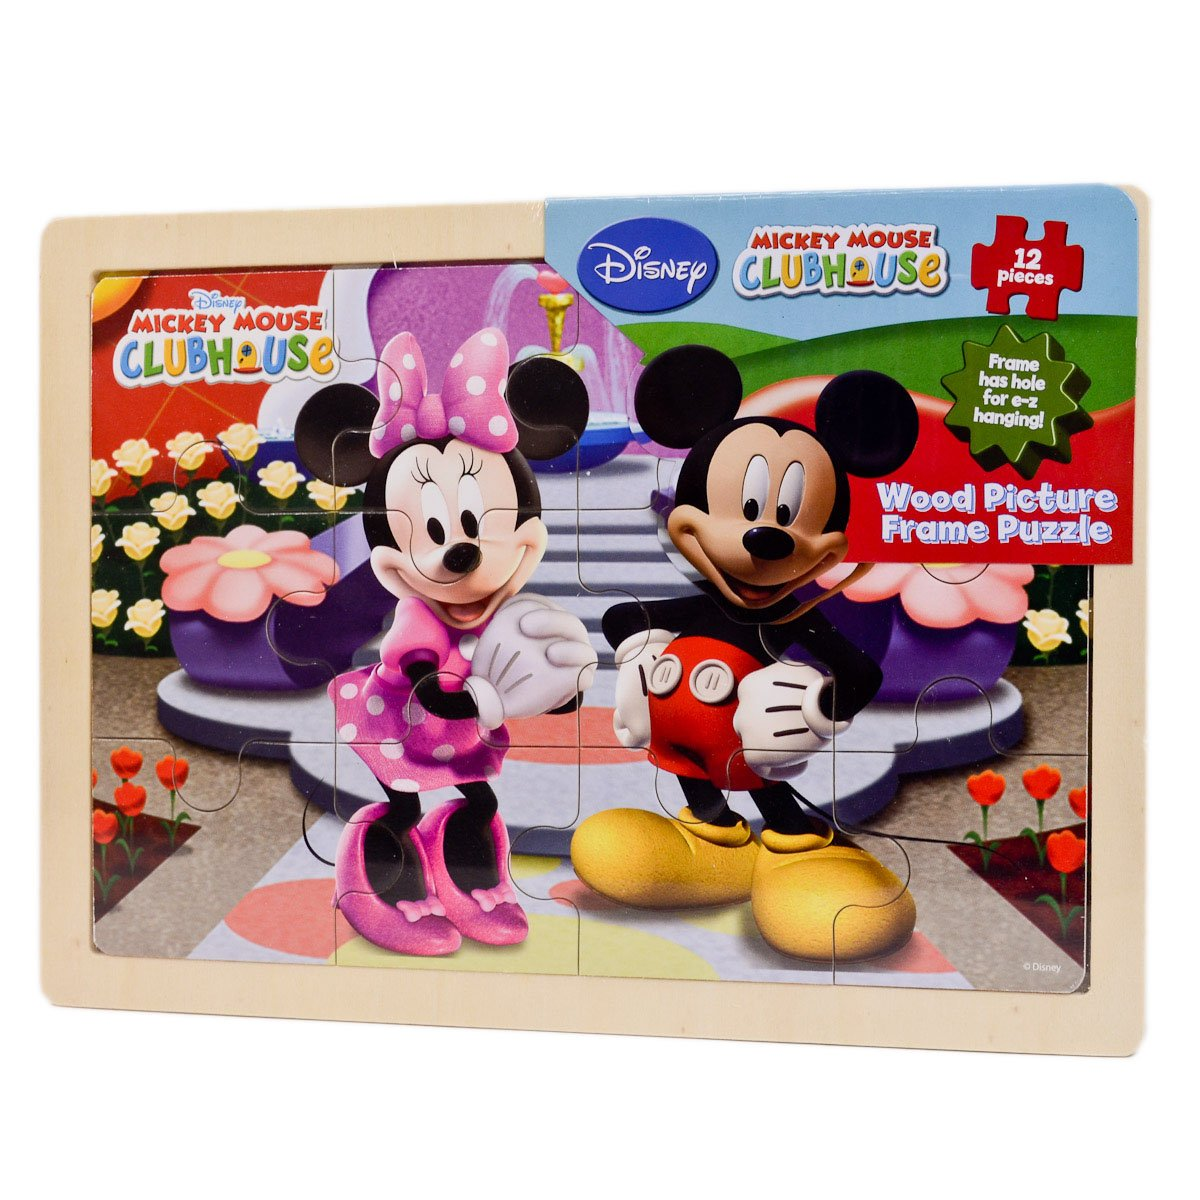 Amazon disney mickey mouse clubhouse wood picture frame amazon disney mickey mouse clubhouse wood picture frame puzzle toys games jeuxipadfo Images